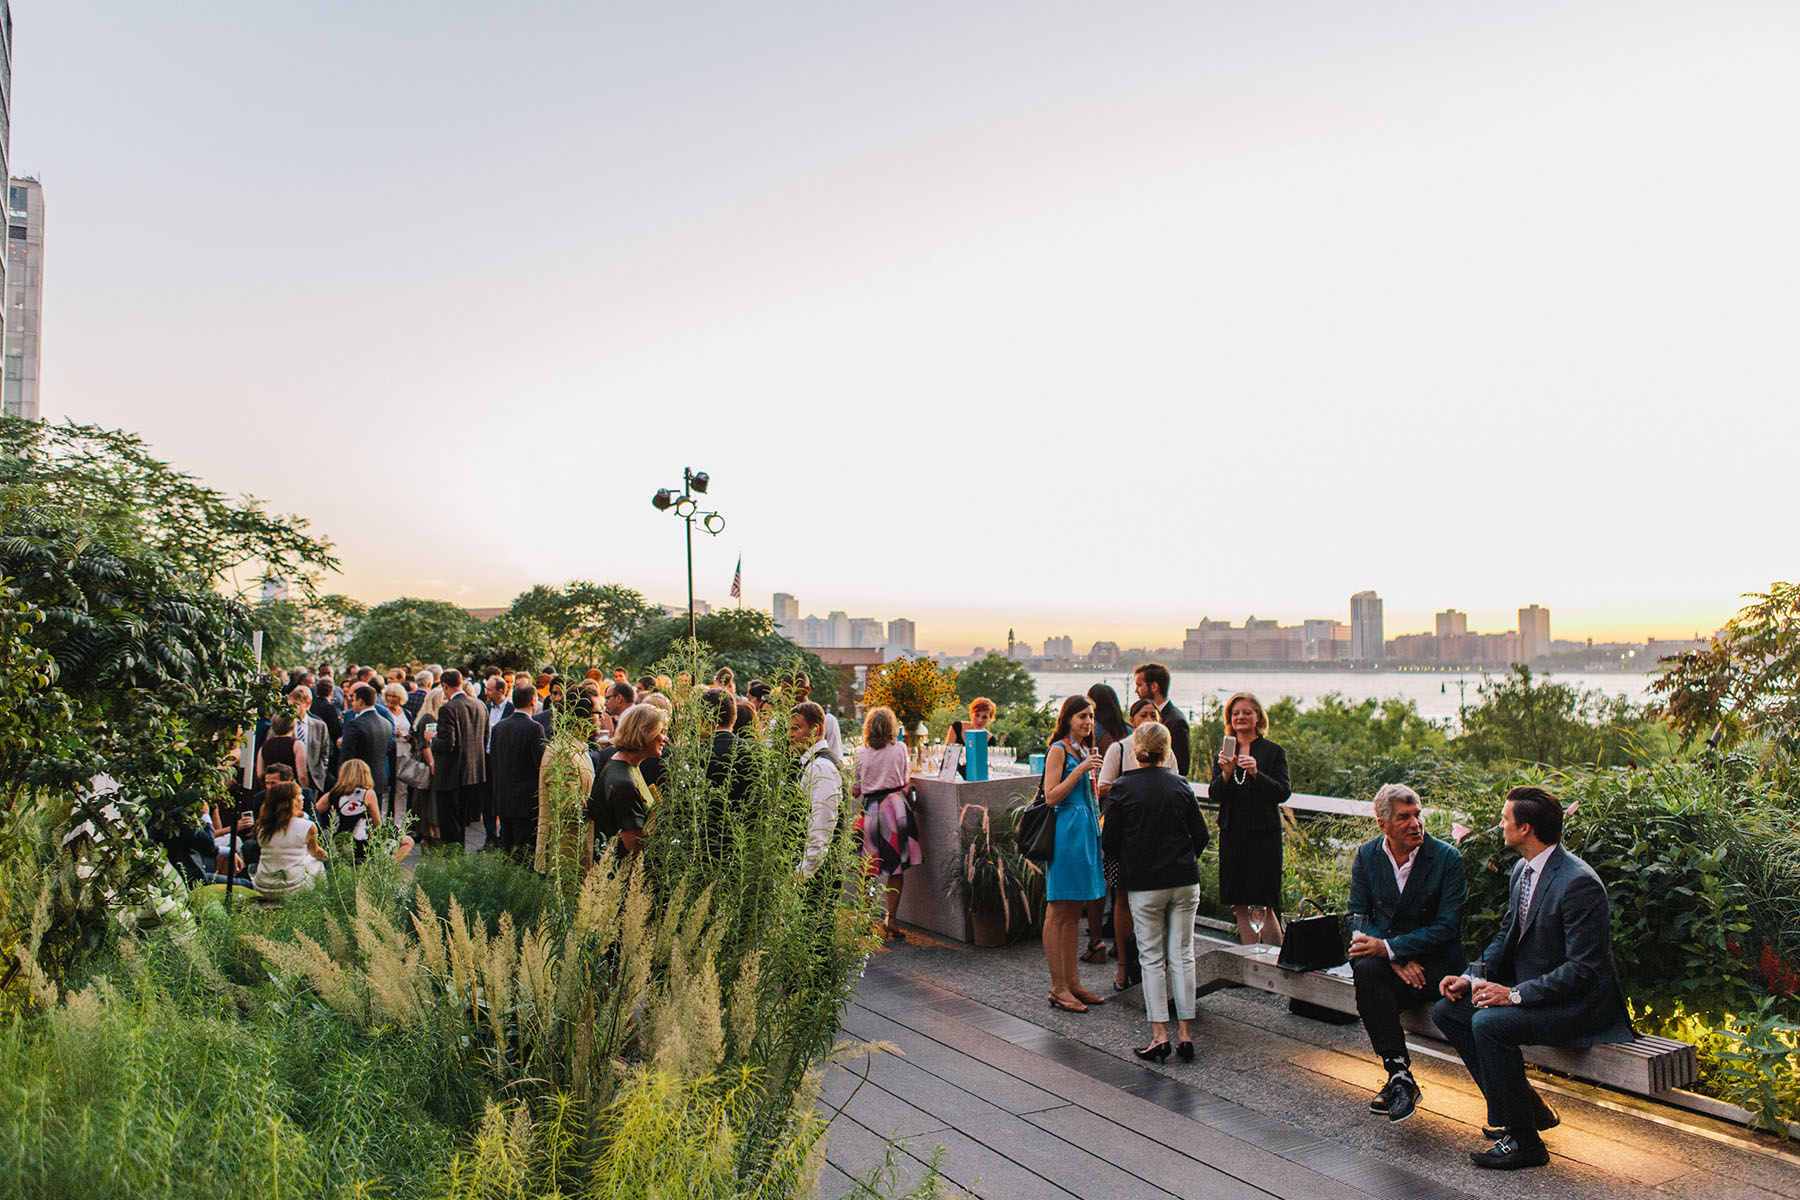 Photo #5 Diller - von Furstenberg Sundeck  at High Line - Chelsea Market Passage